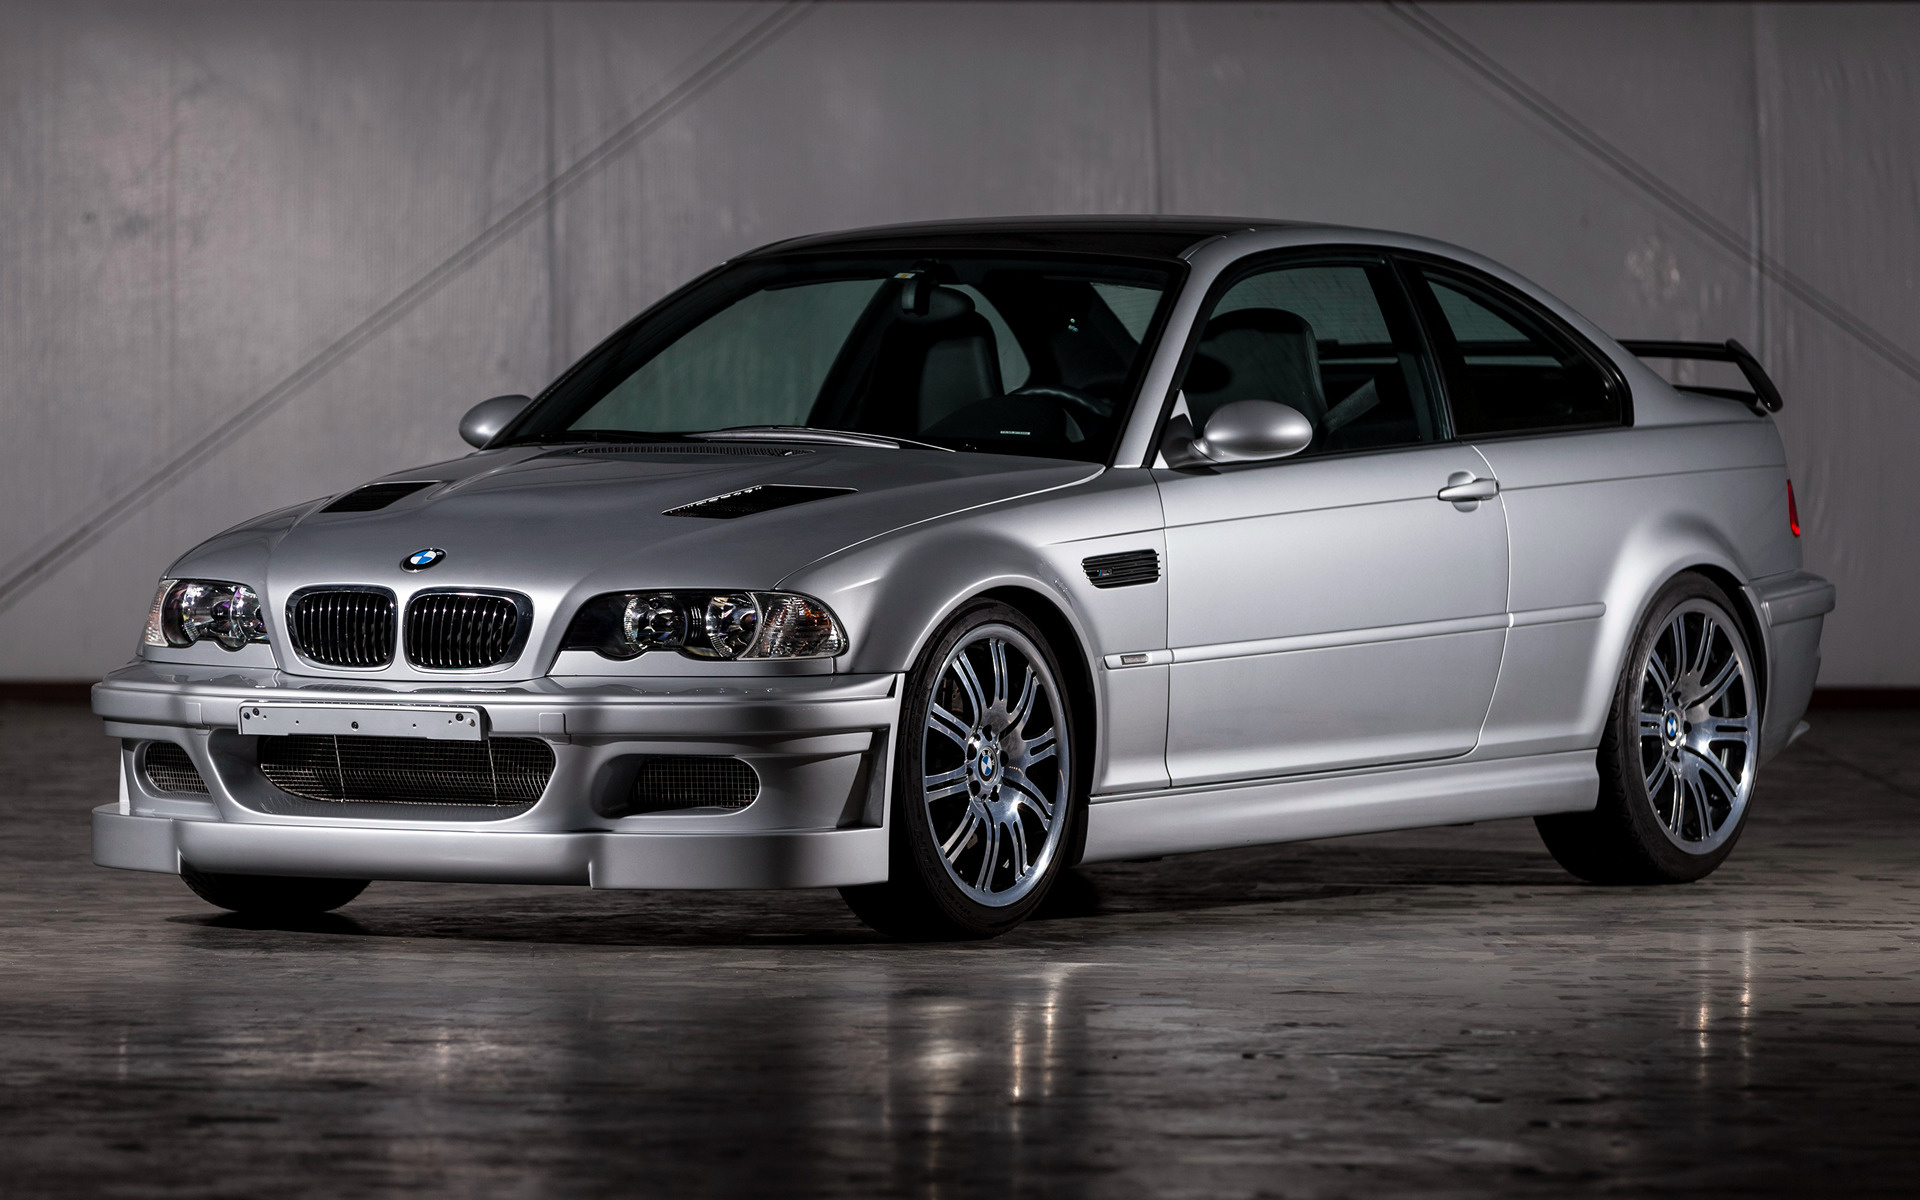 2001 Bmw M3 Gtr Coupe Road Version Wallpapers And Hd